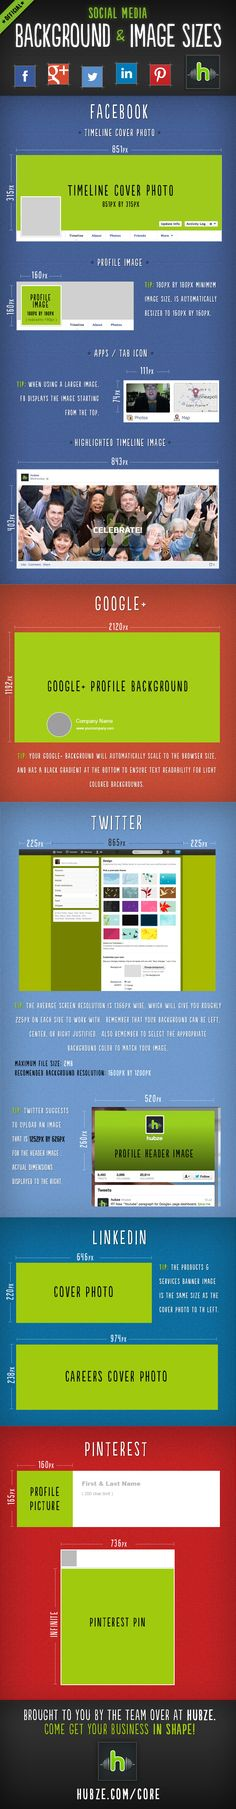 Social Platform Image Sizes - Infographic